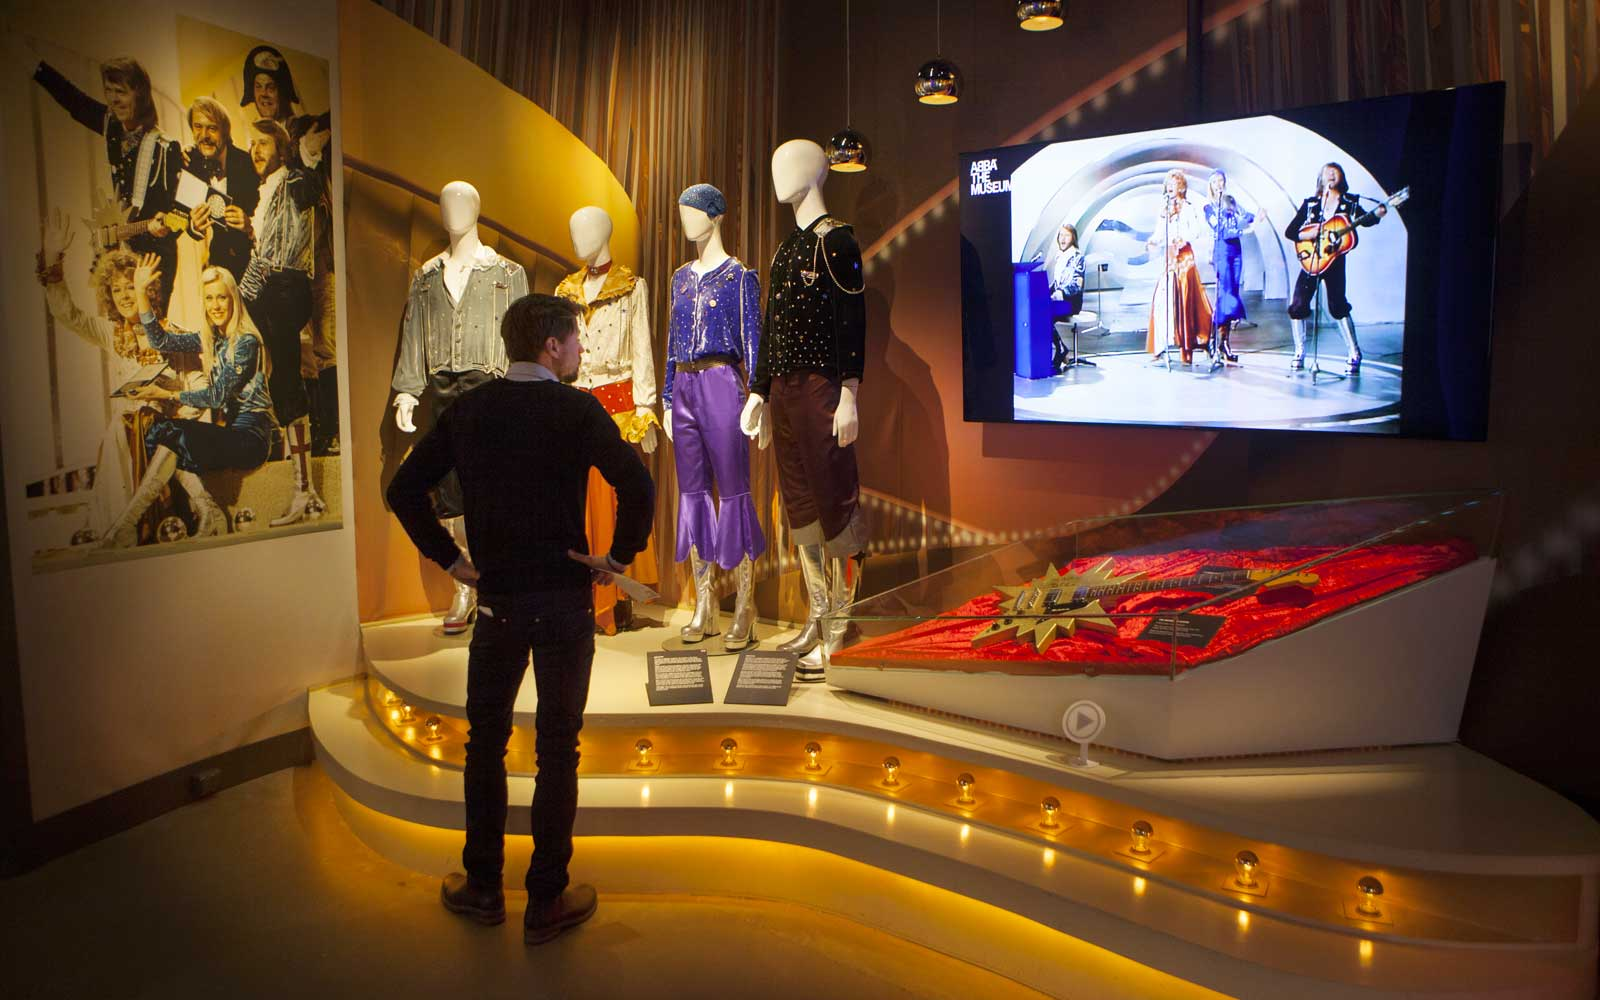 ABBA museum in Stockholm, Sweden